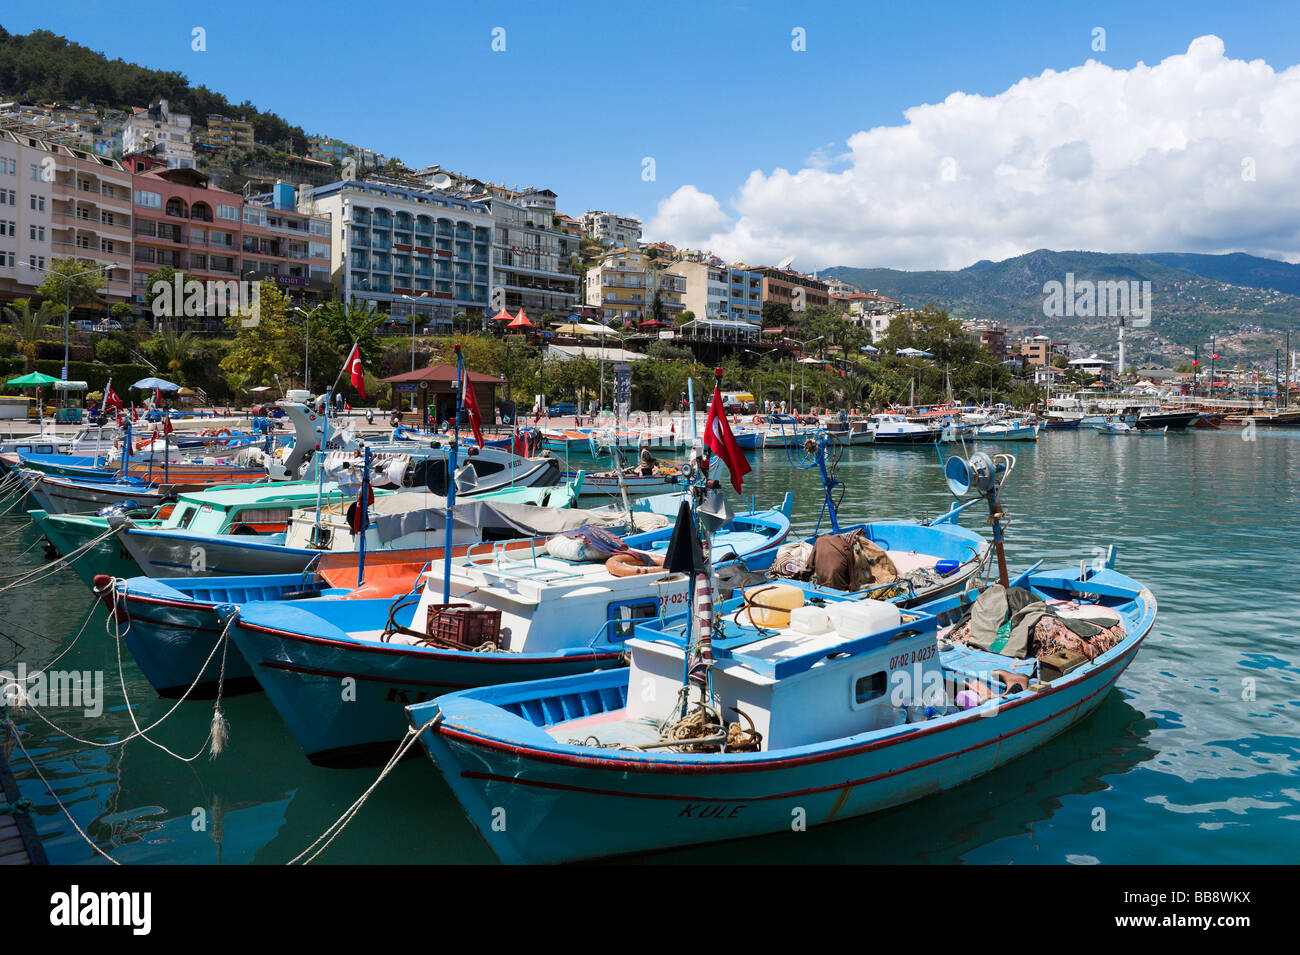 Local Fishing Boats in the Harbour, Alanya, Mediterranean Coast, Turkey - Stock Image